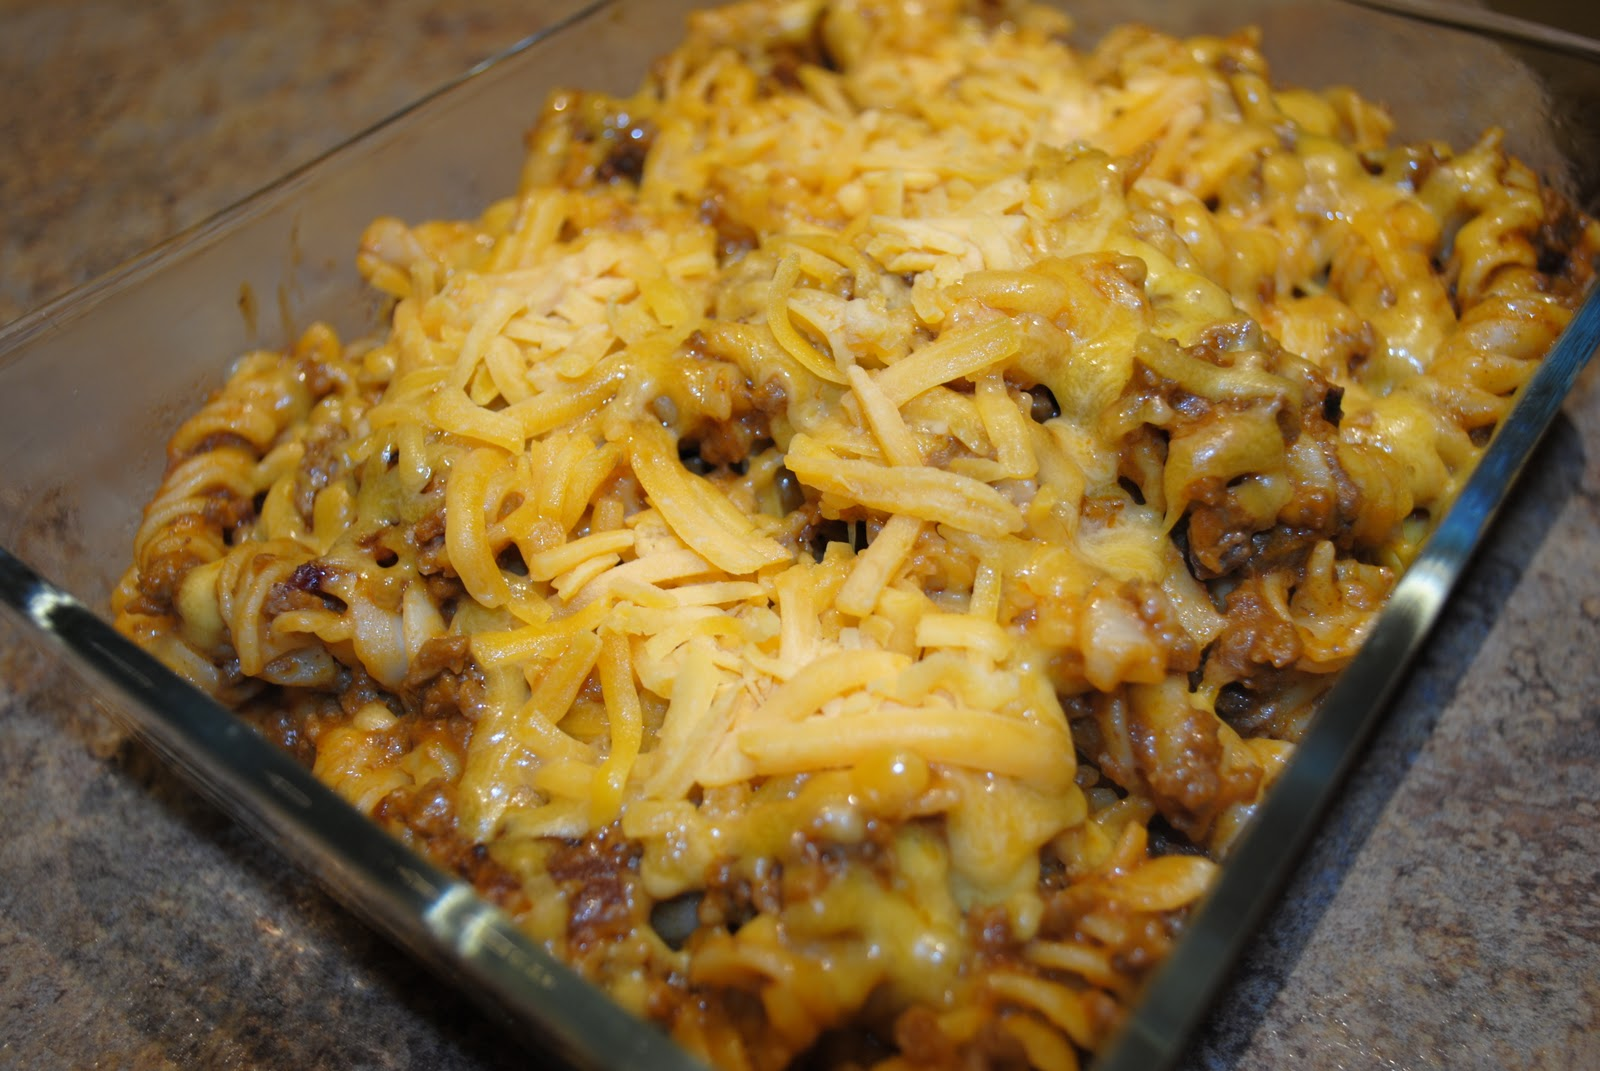 The Audacious Cook: Bacon Cheeseburger Pasta